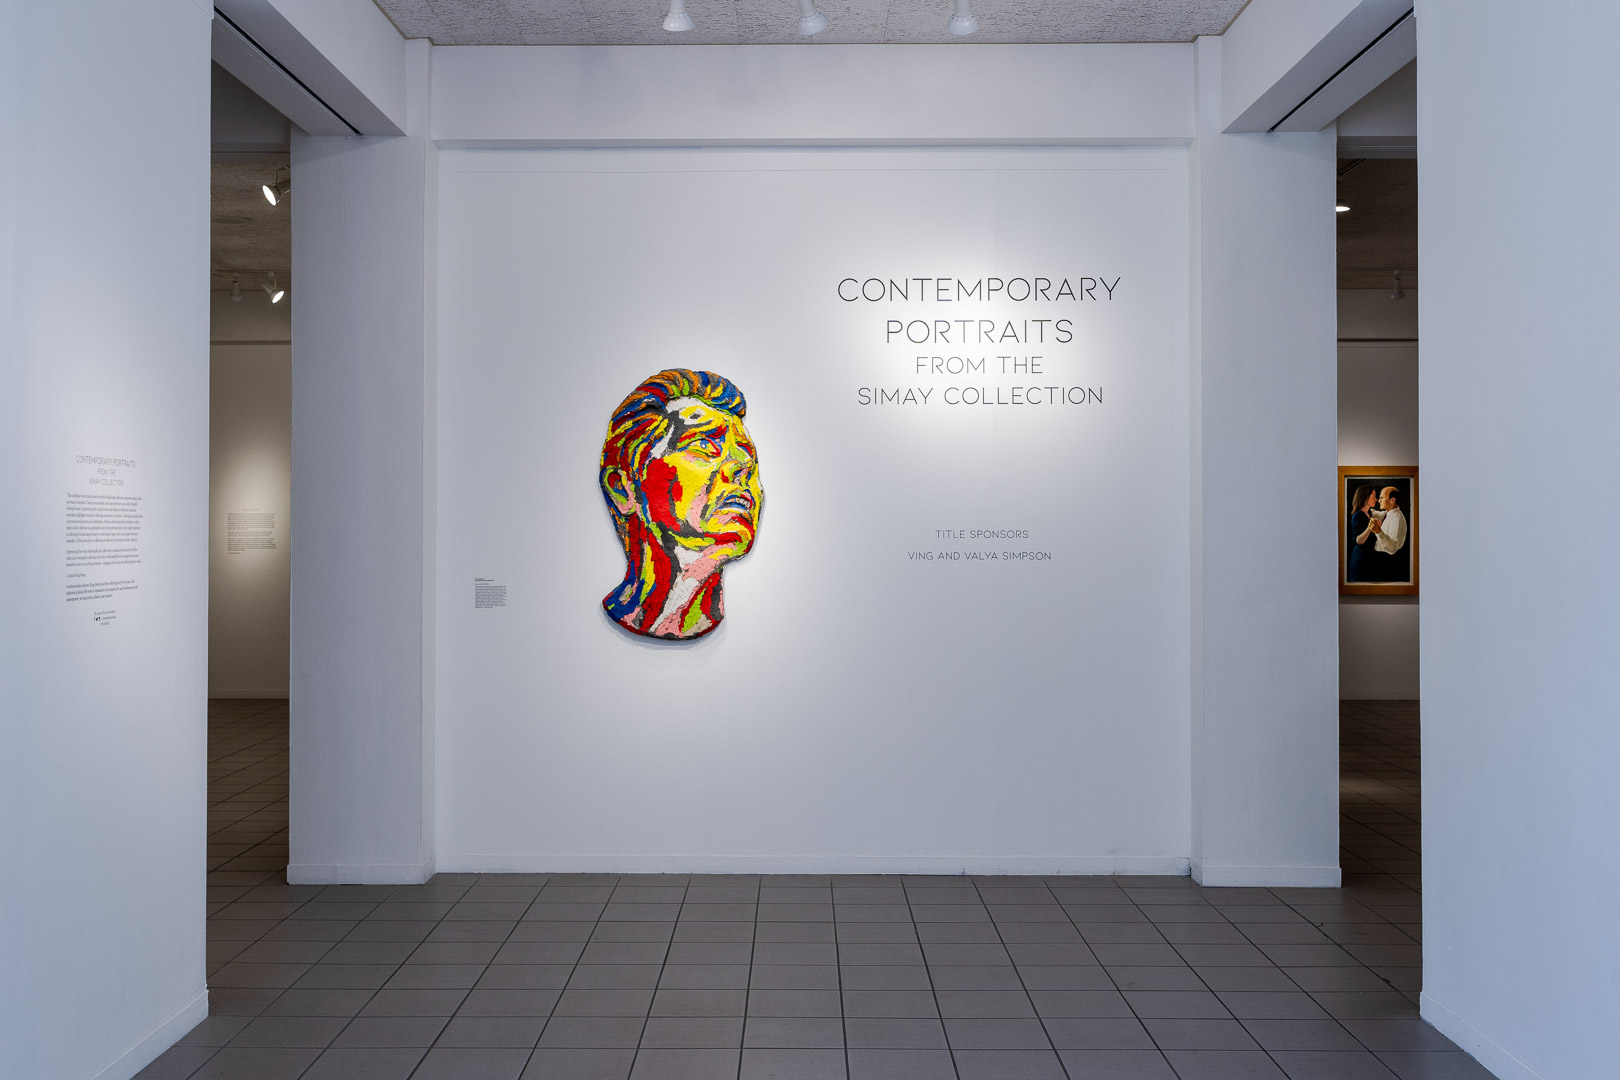 Contemporary Portraits from the Simay Collection installed at OMA